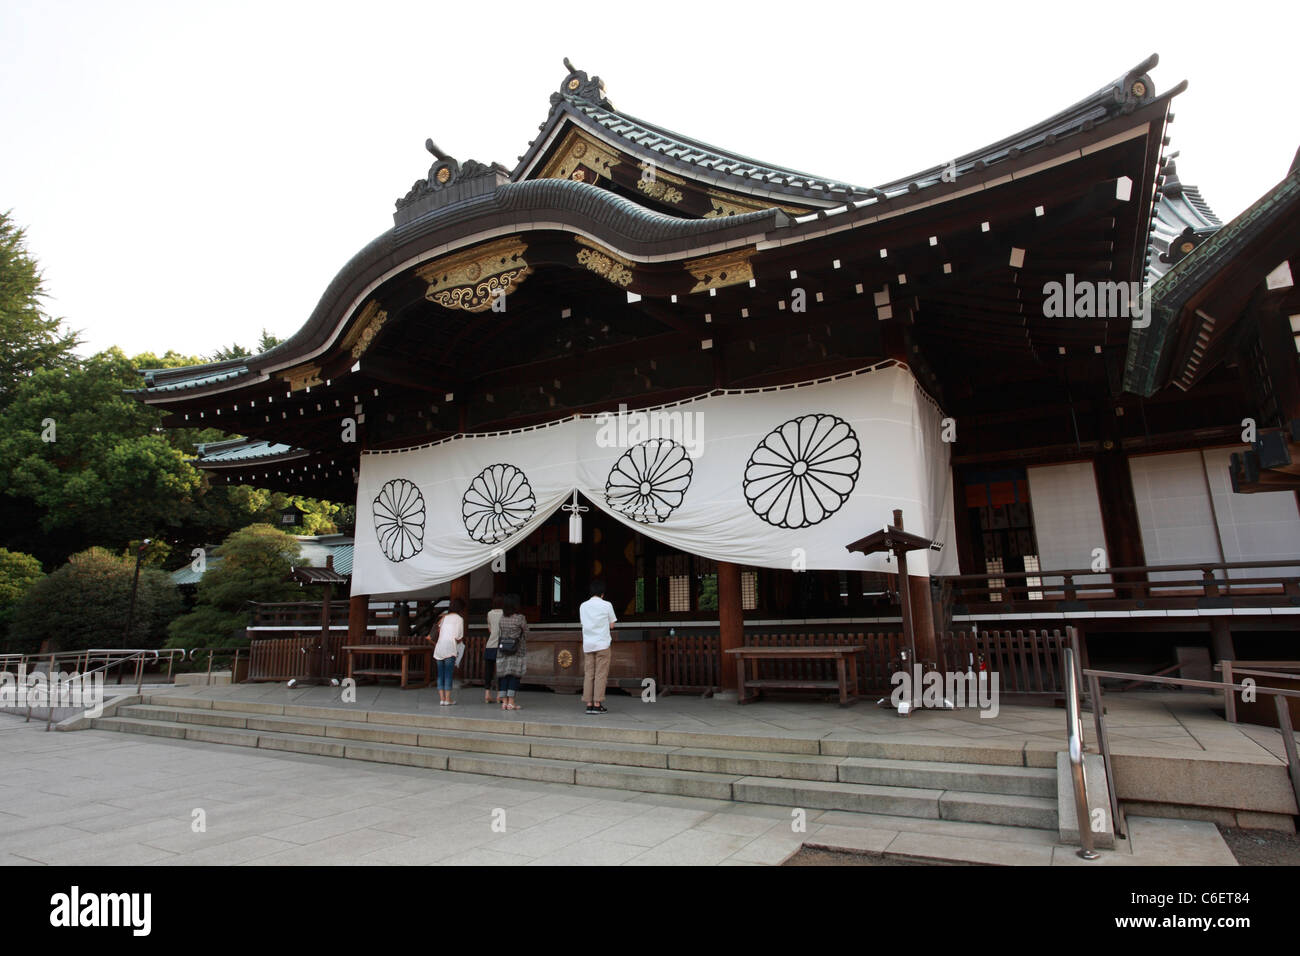 TOKYO - AUGUST 18: The Haiden (Main Hall) of Yasukuni Shrine on August 18, 2011 in Chiyoda, Tokyo, Japan. - Stock Image